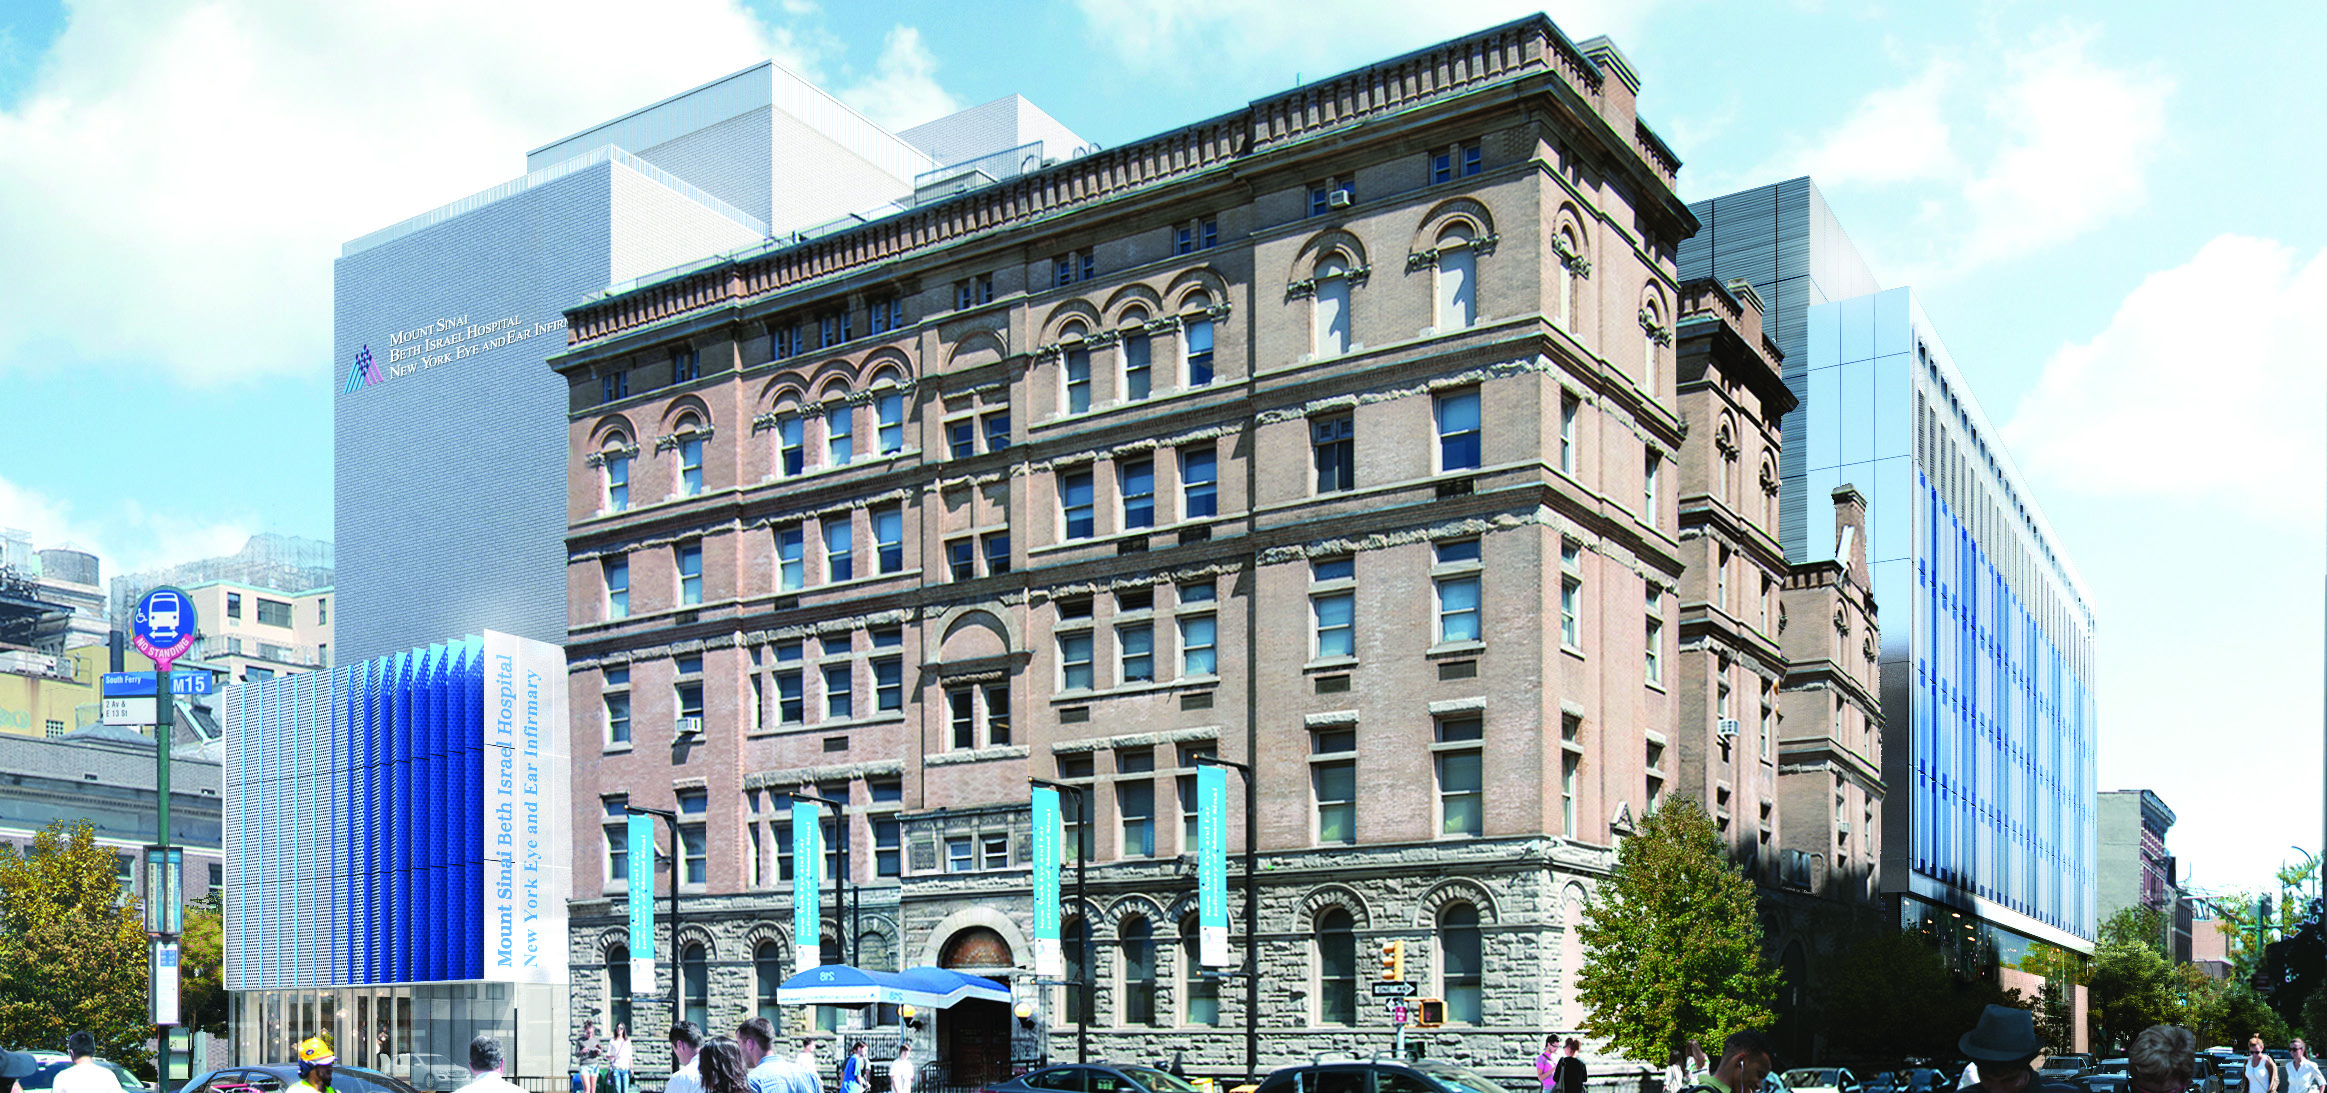 Mount Sinai files plans for new $600M Beth Israel facility